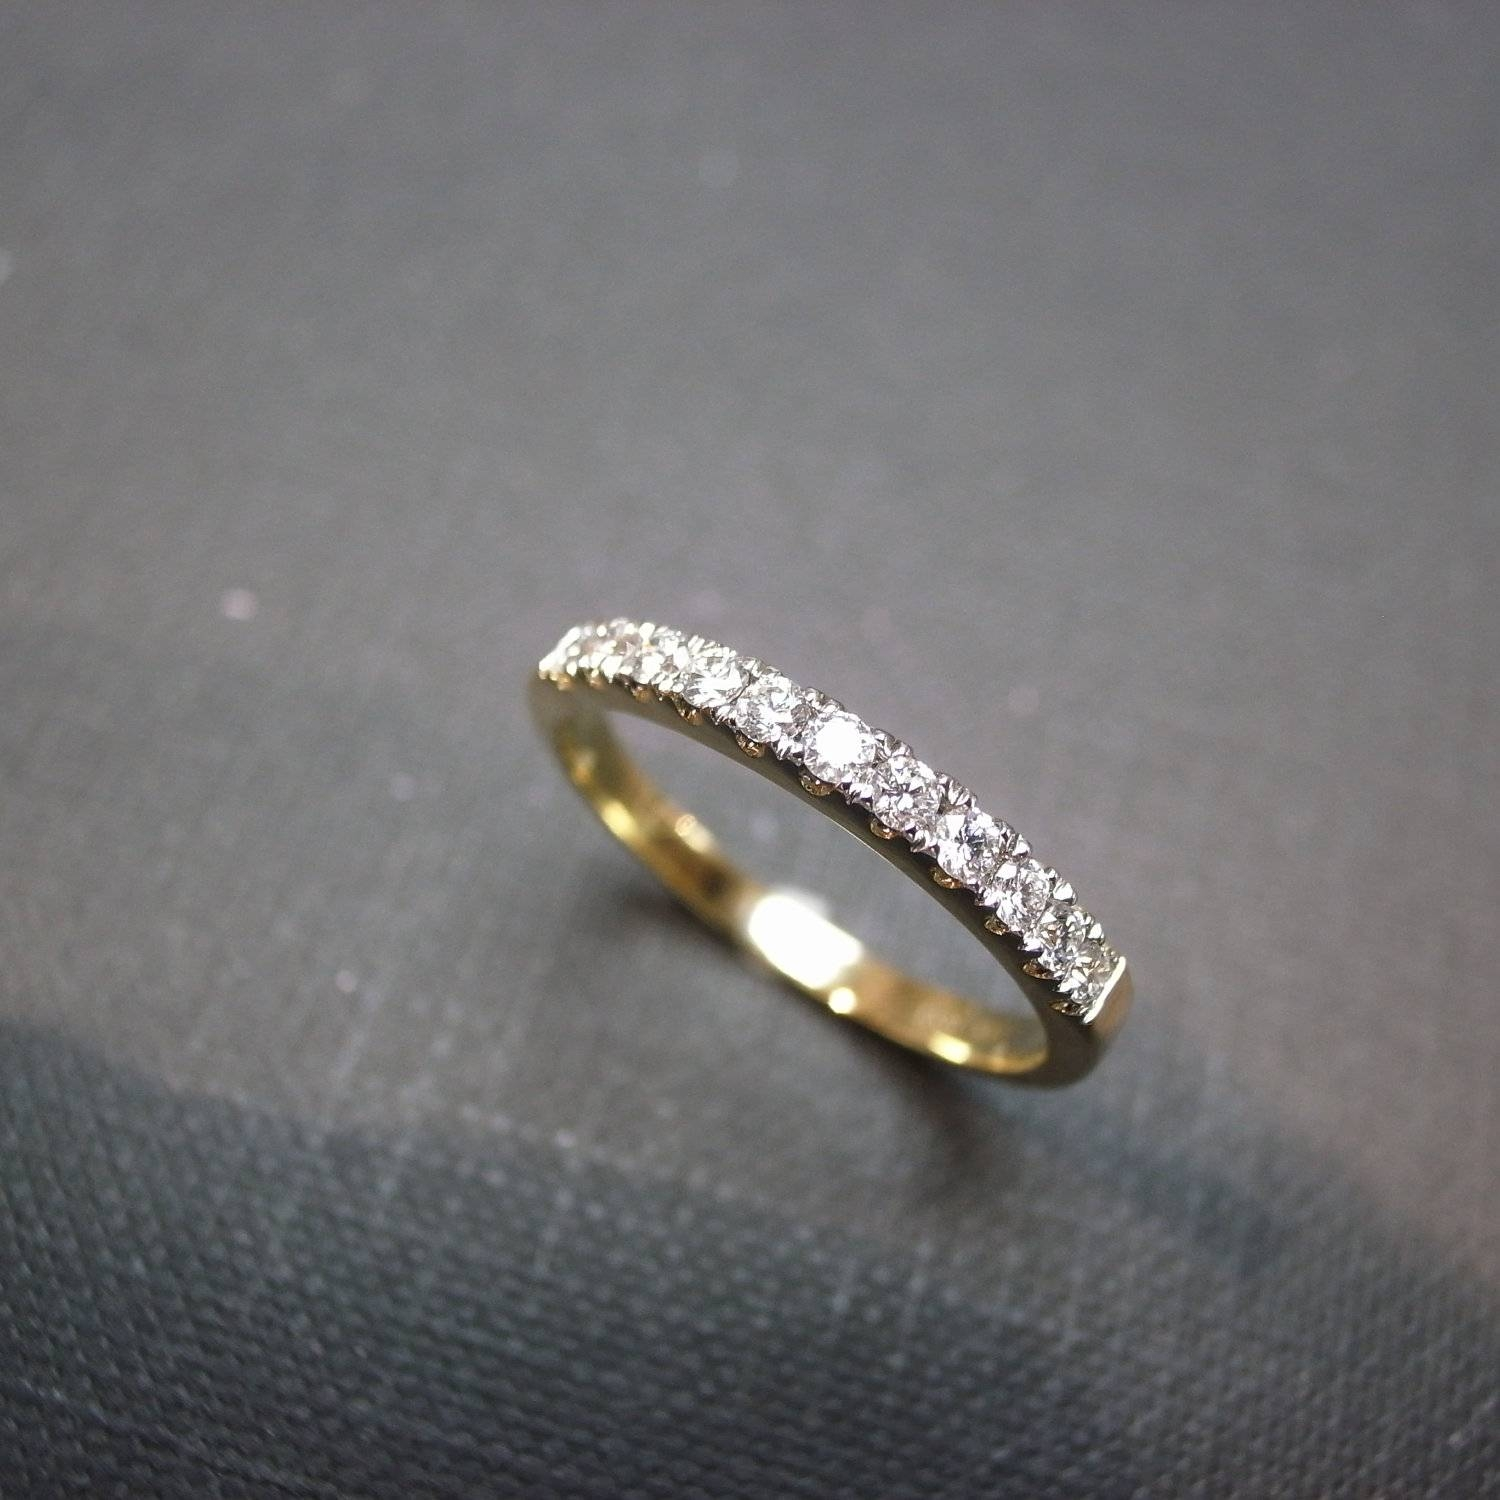 Custom Made Ring, Gold Diamond Bridal, Her Anniversary Ring, Women Regarding Current Custom Made Anniversary Rings (Gallery 18 of 25)